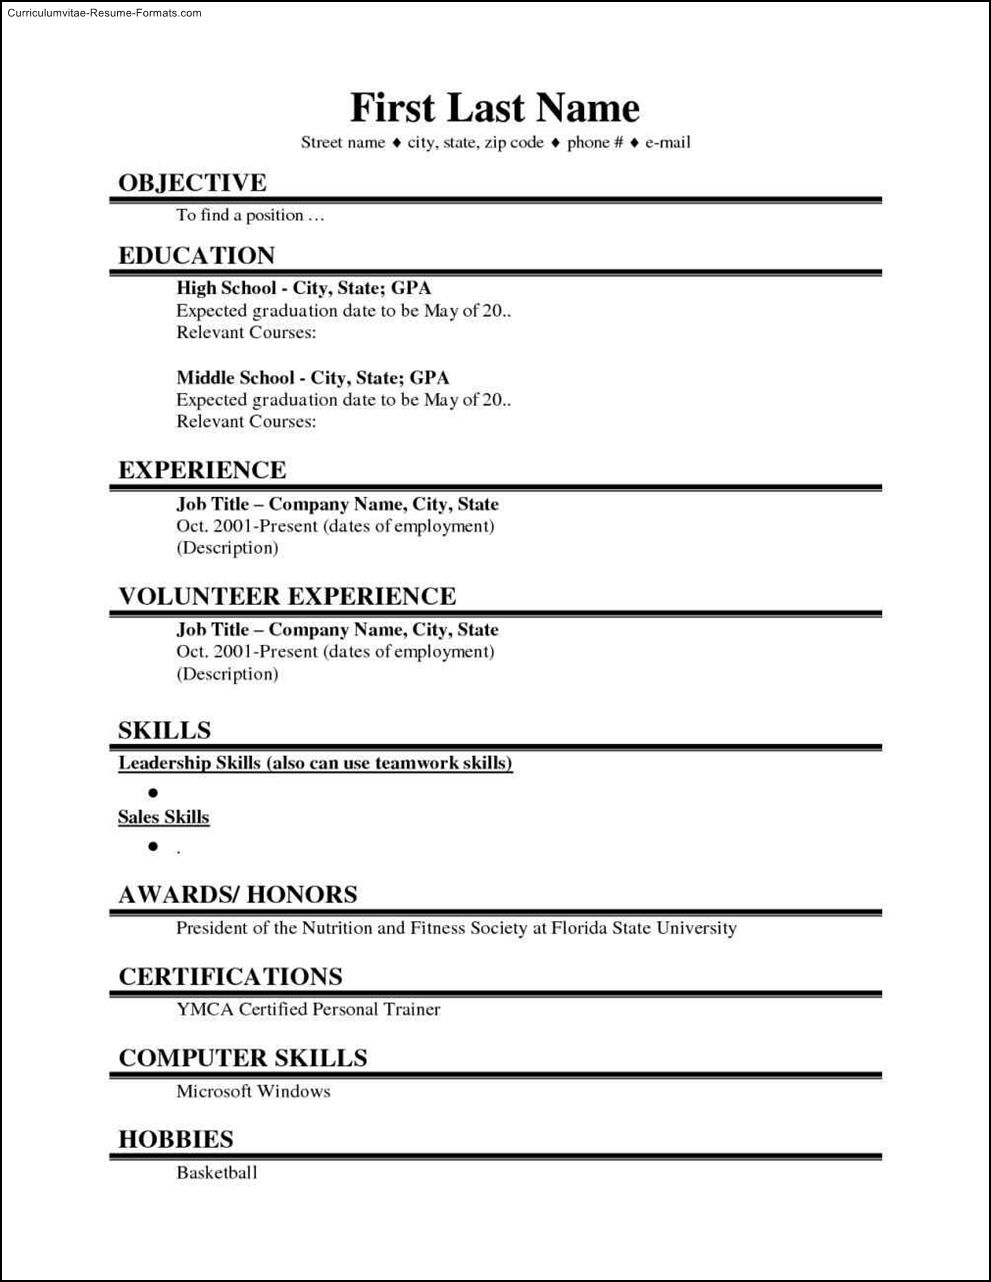 Resume Examples Me College Resume Template Job Resume Examples First Job Resume